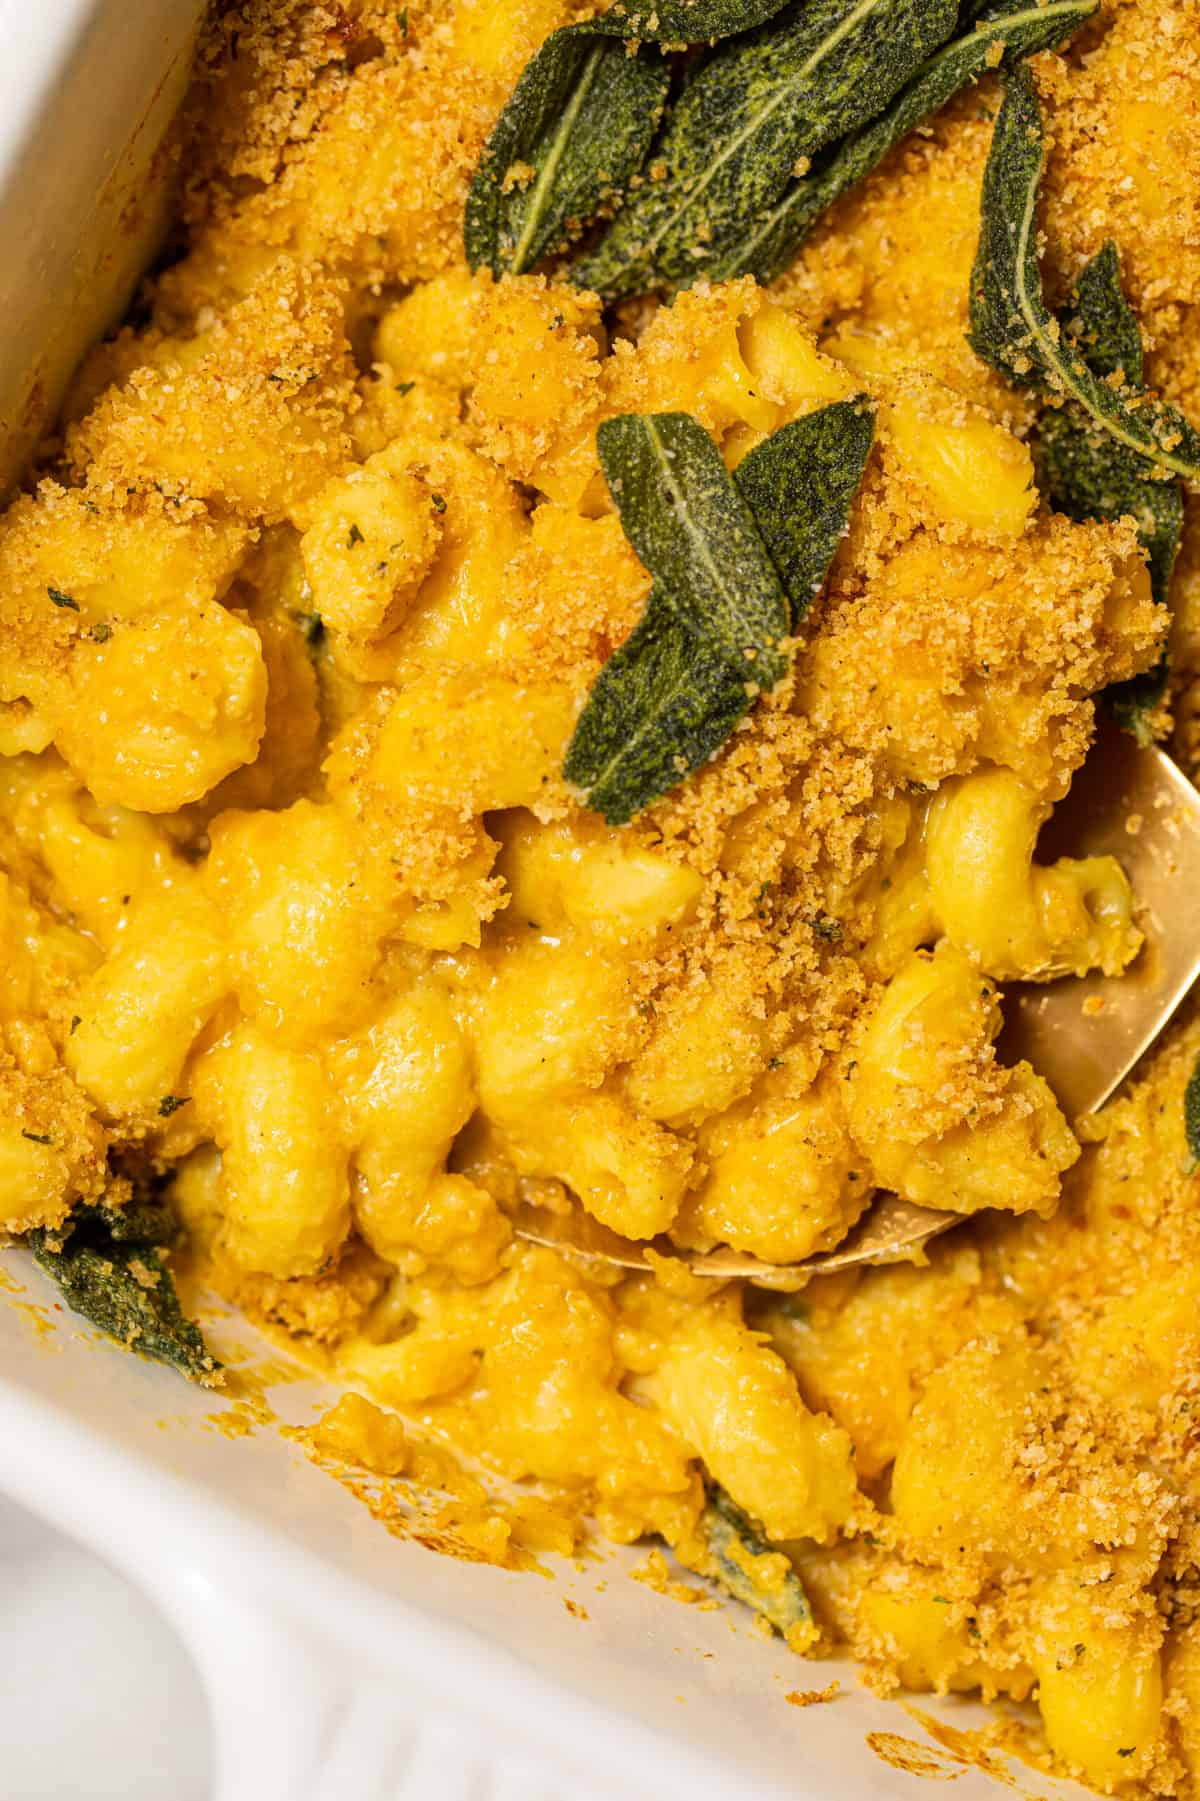 Butternut squash pasta with crispy sage leaves.